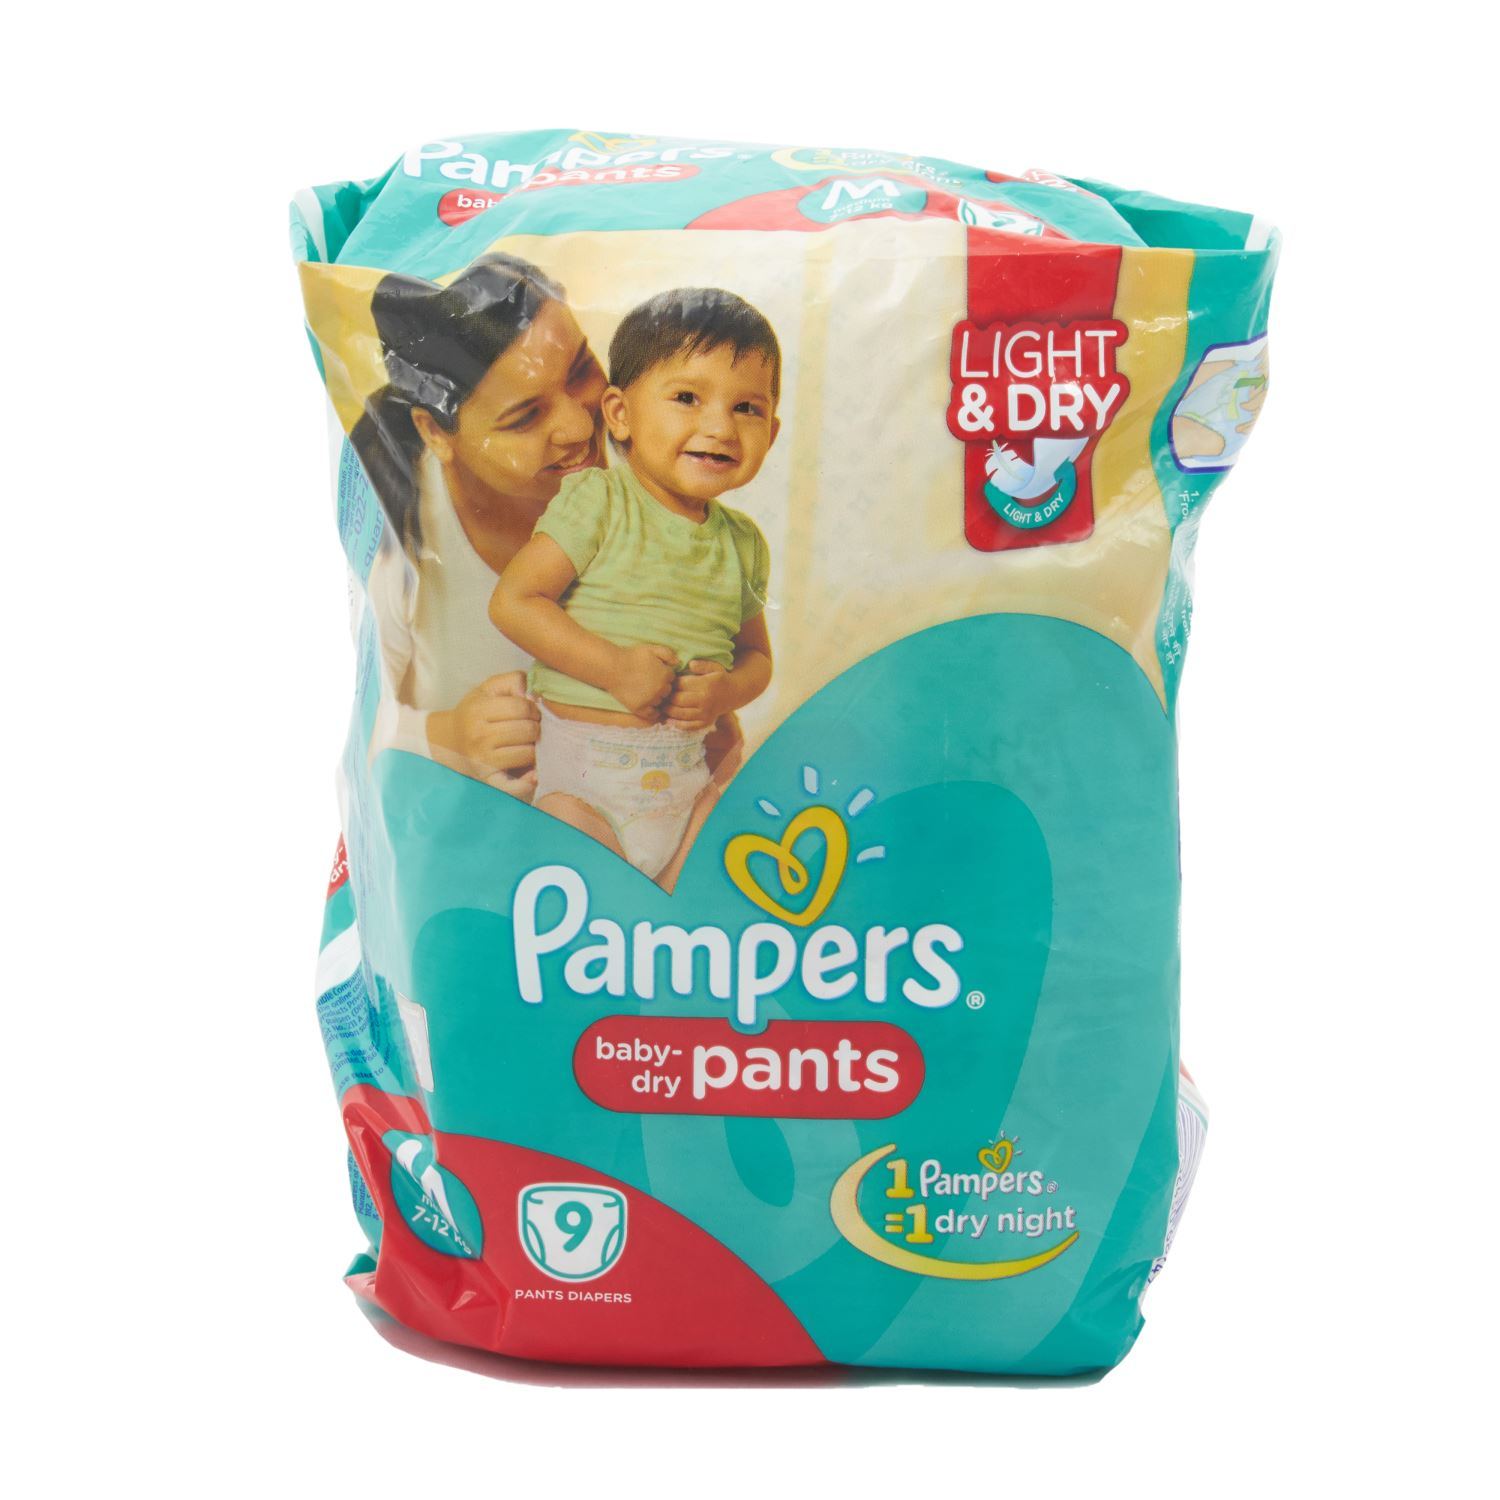 Pampers Pants Style Diapers Medium - 9 Nos